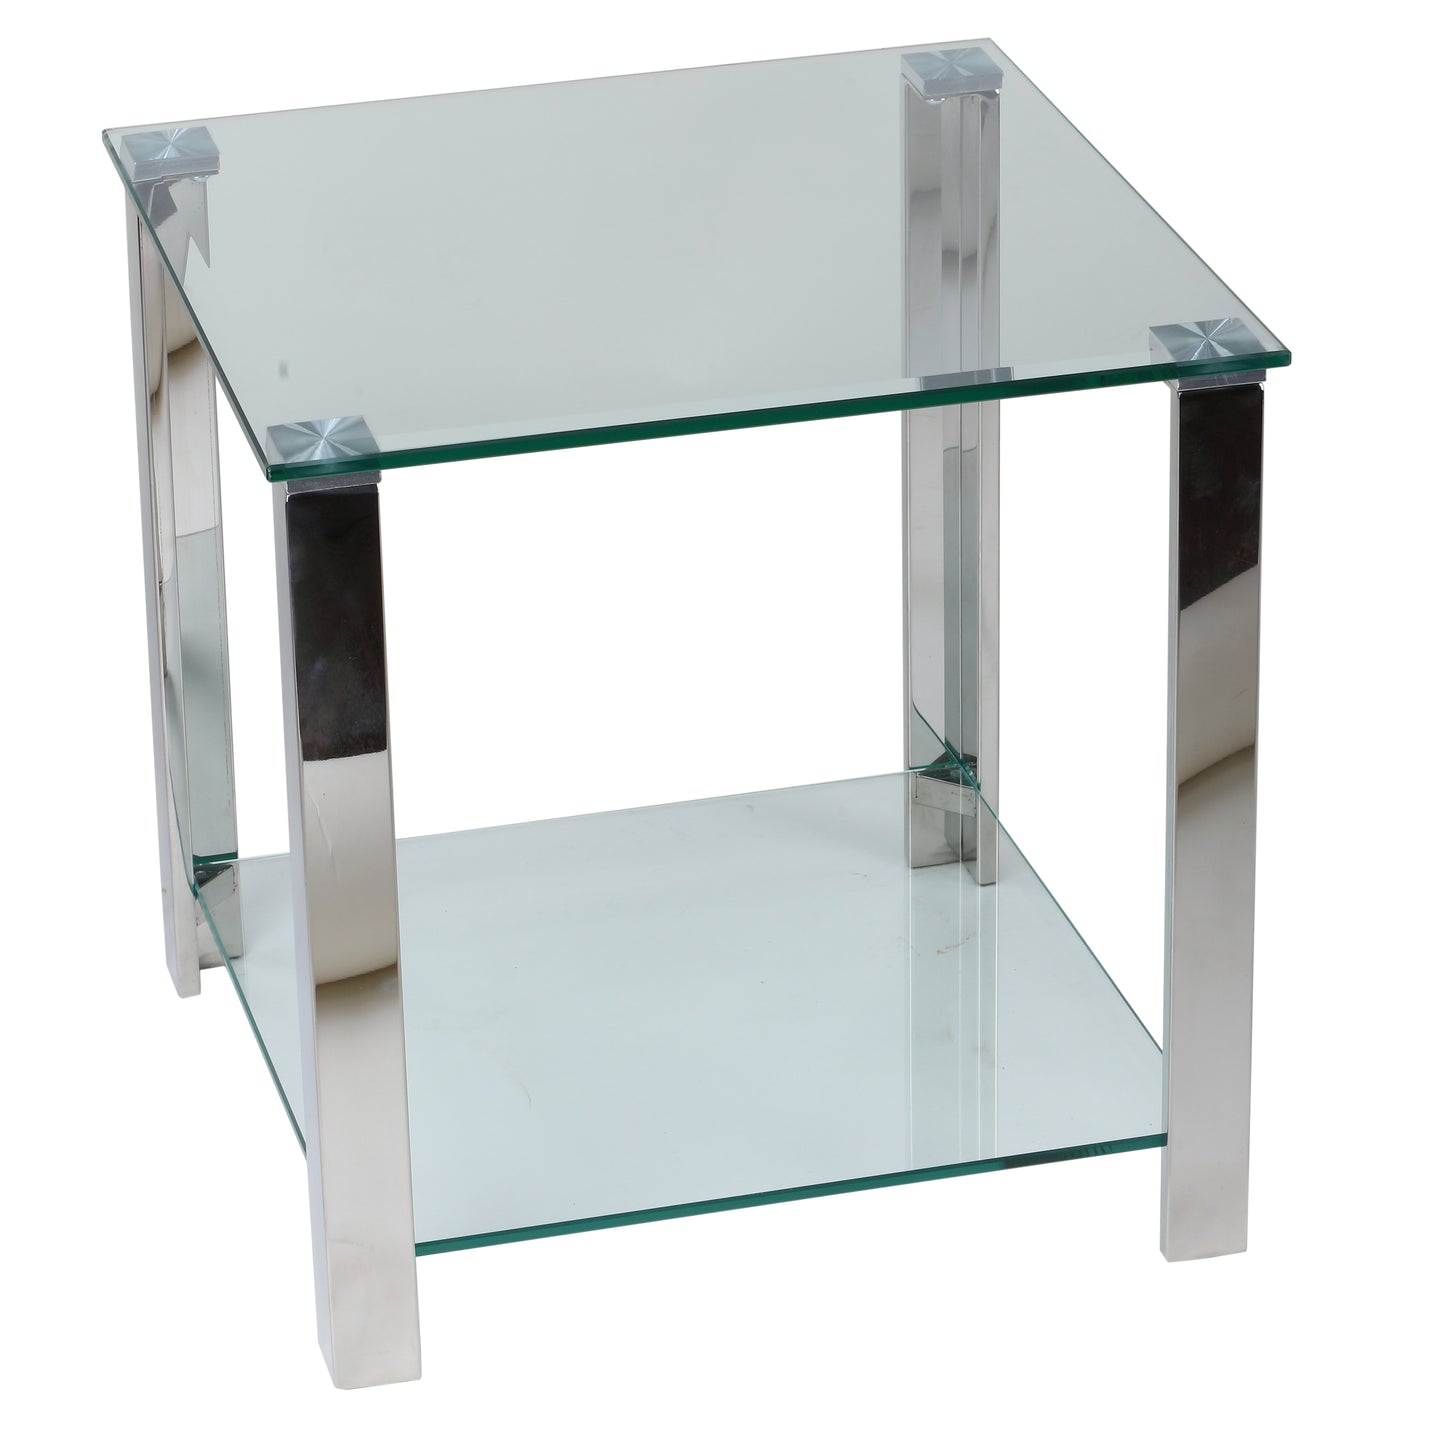 Cortesi Home Melissa Double Shelf Glass End Table, 20